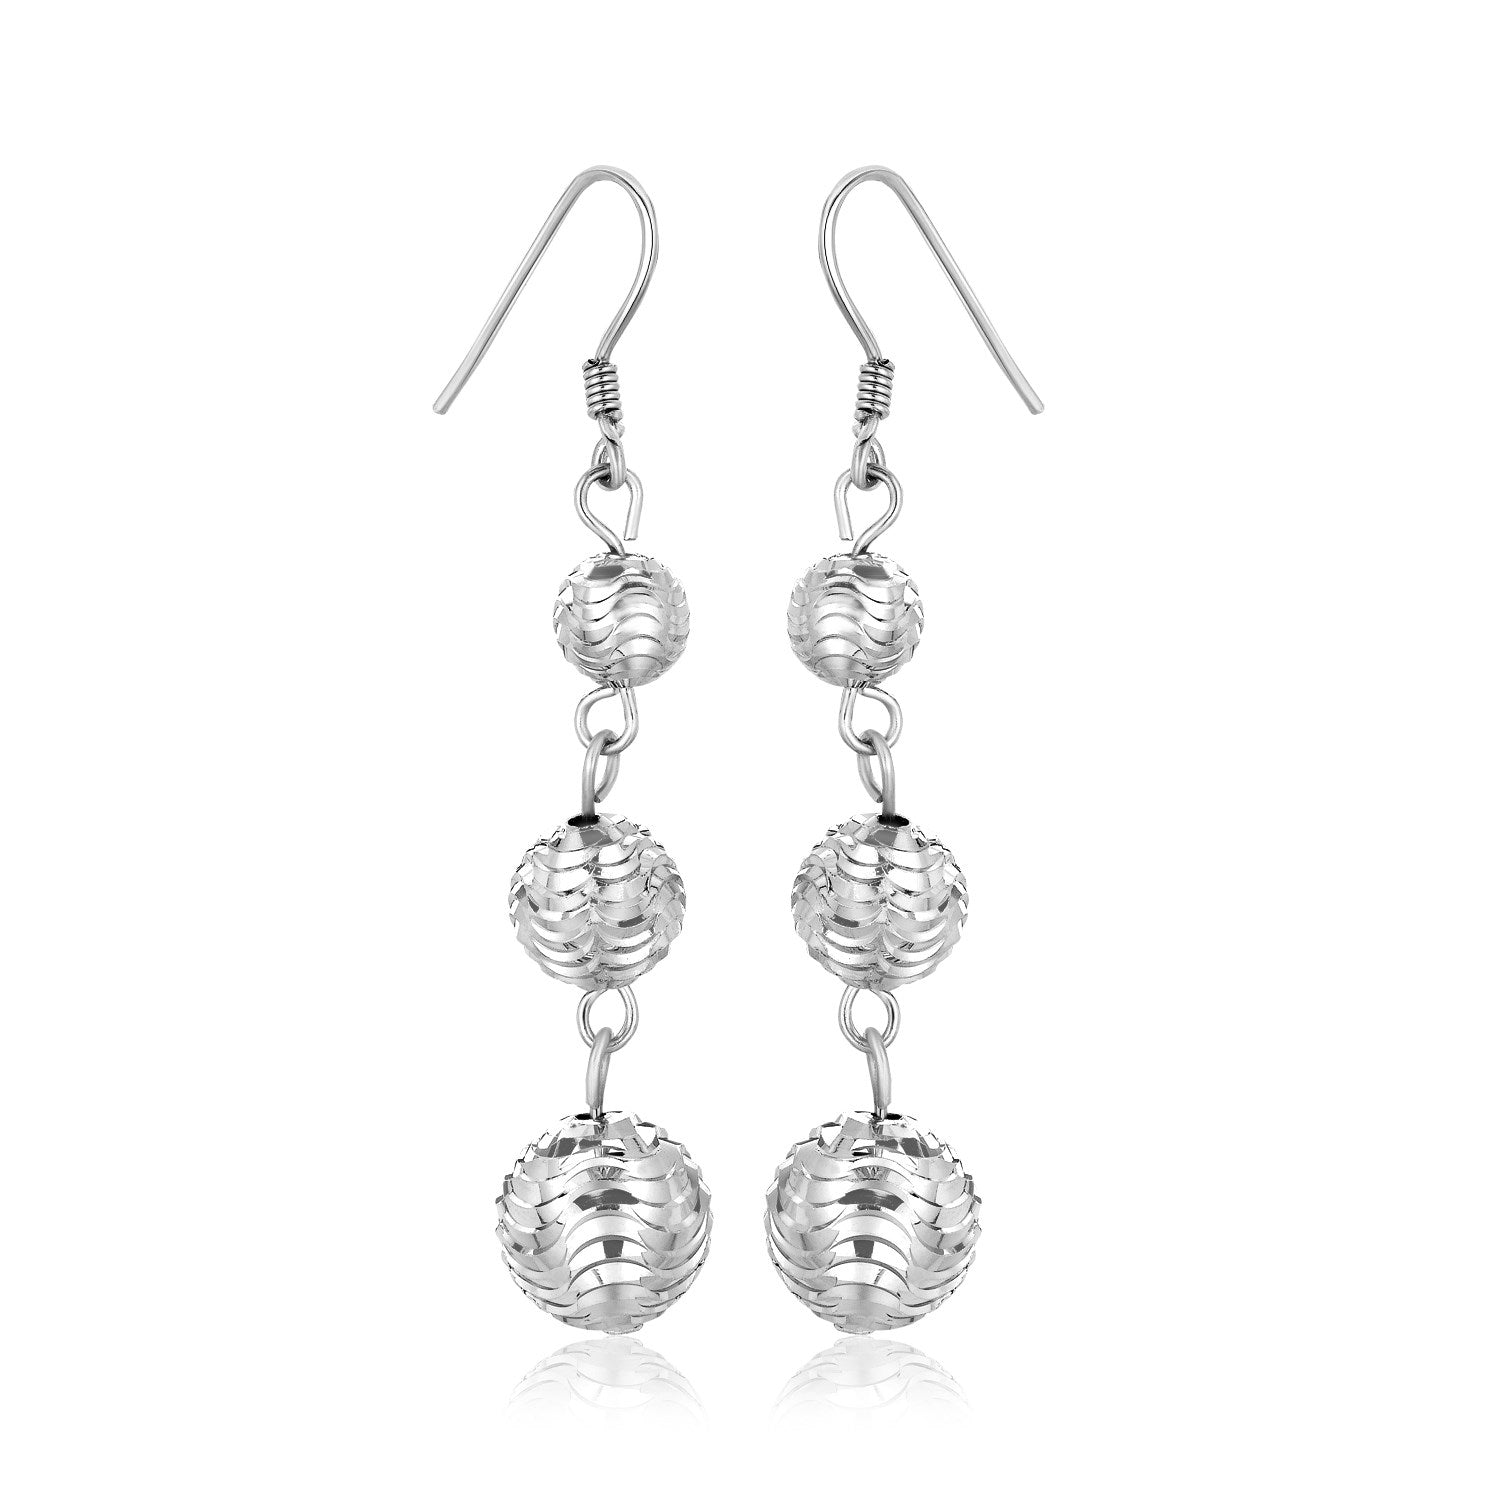 Unique Modern Paris Style Sterling Silver Layered Textured Ball Dangling Earrings